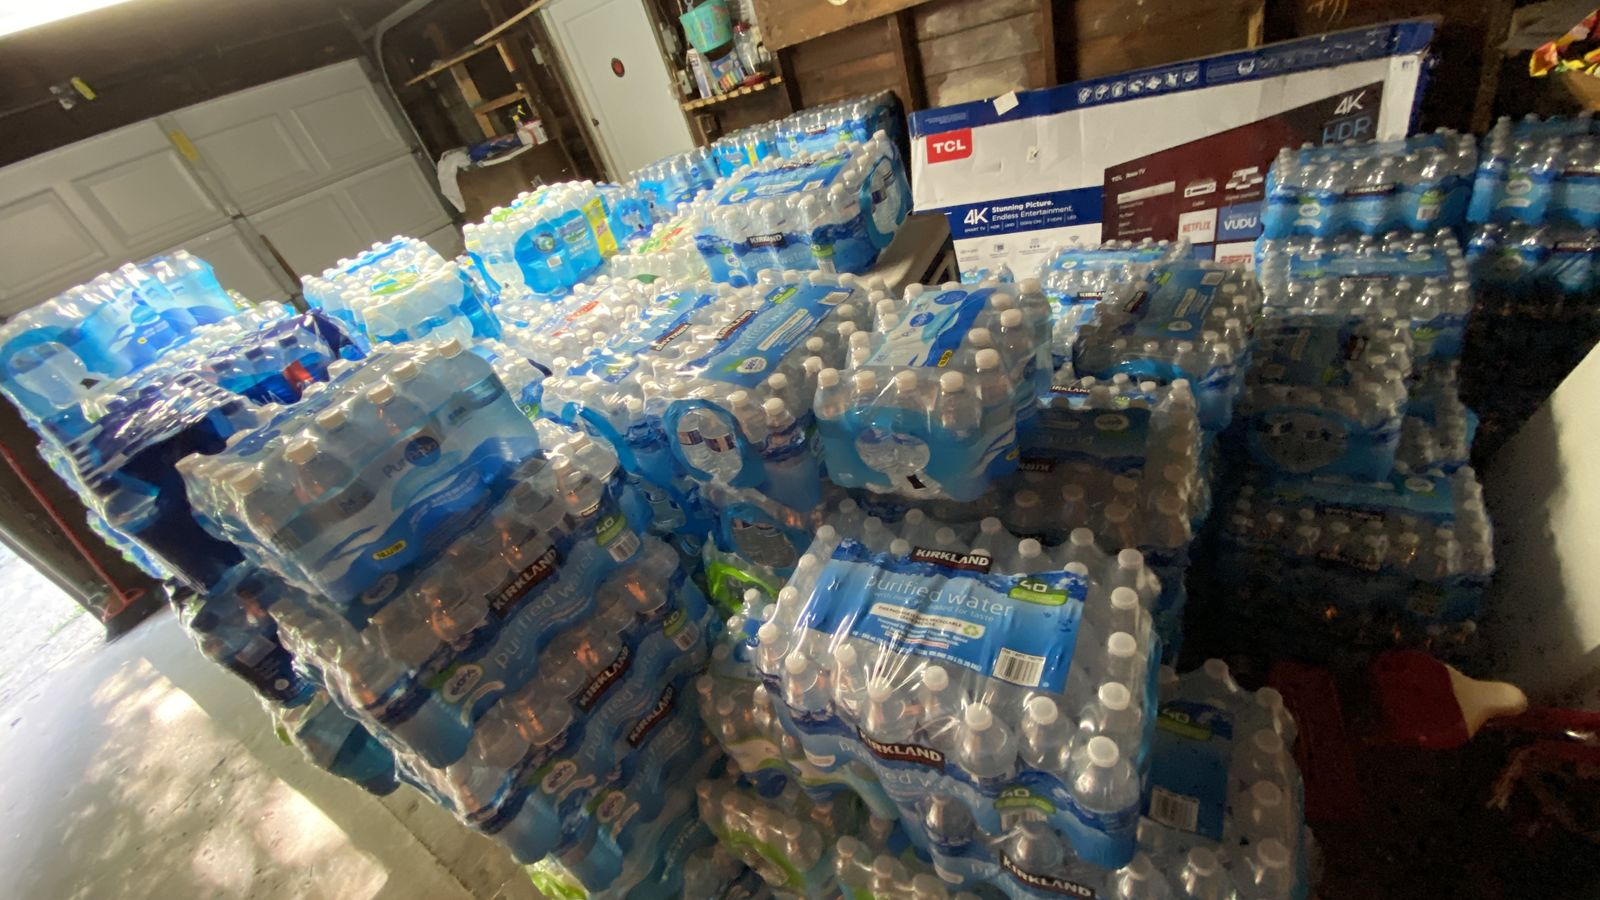 More than 250 cases of water fill Tamara Custard's garage Tuesday, July 27, 2020. Phase 1 of her plan is to gather as much water a possible for the city of Flint.{ } (WWMT/Jason Heeres)